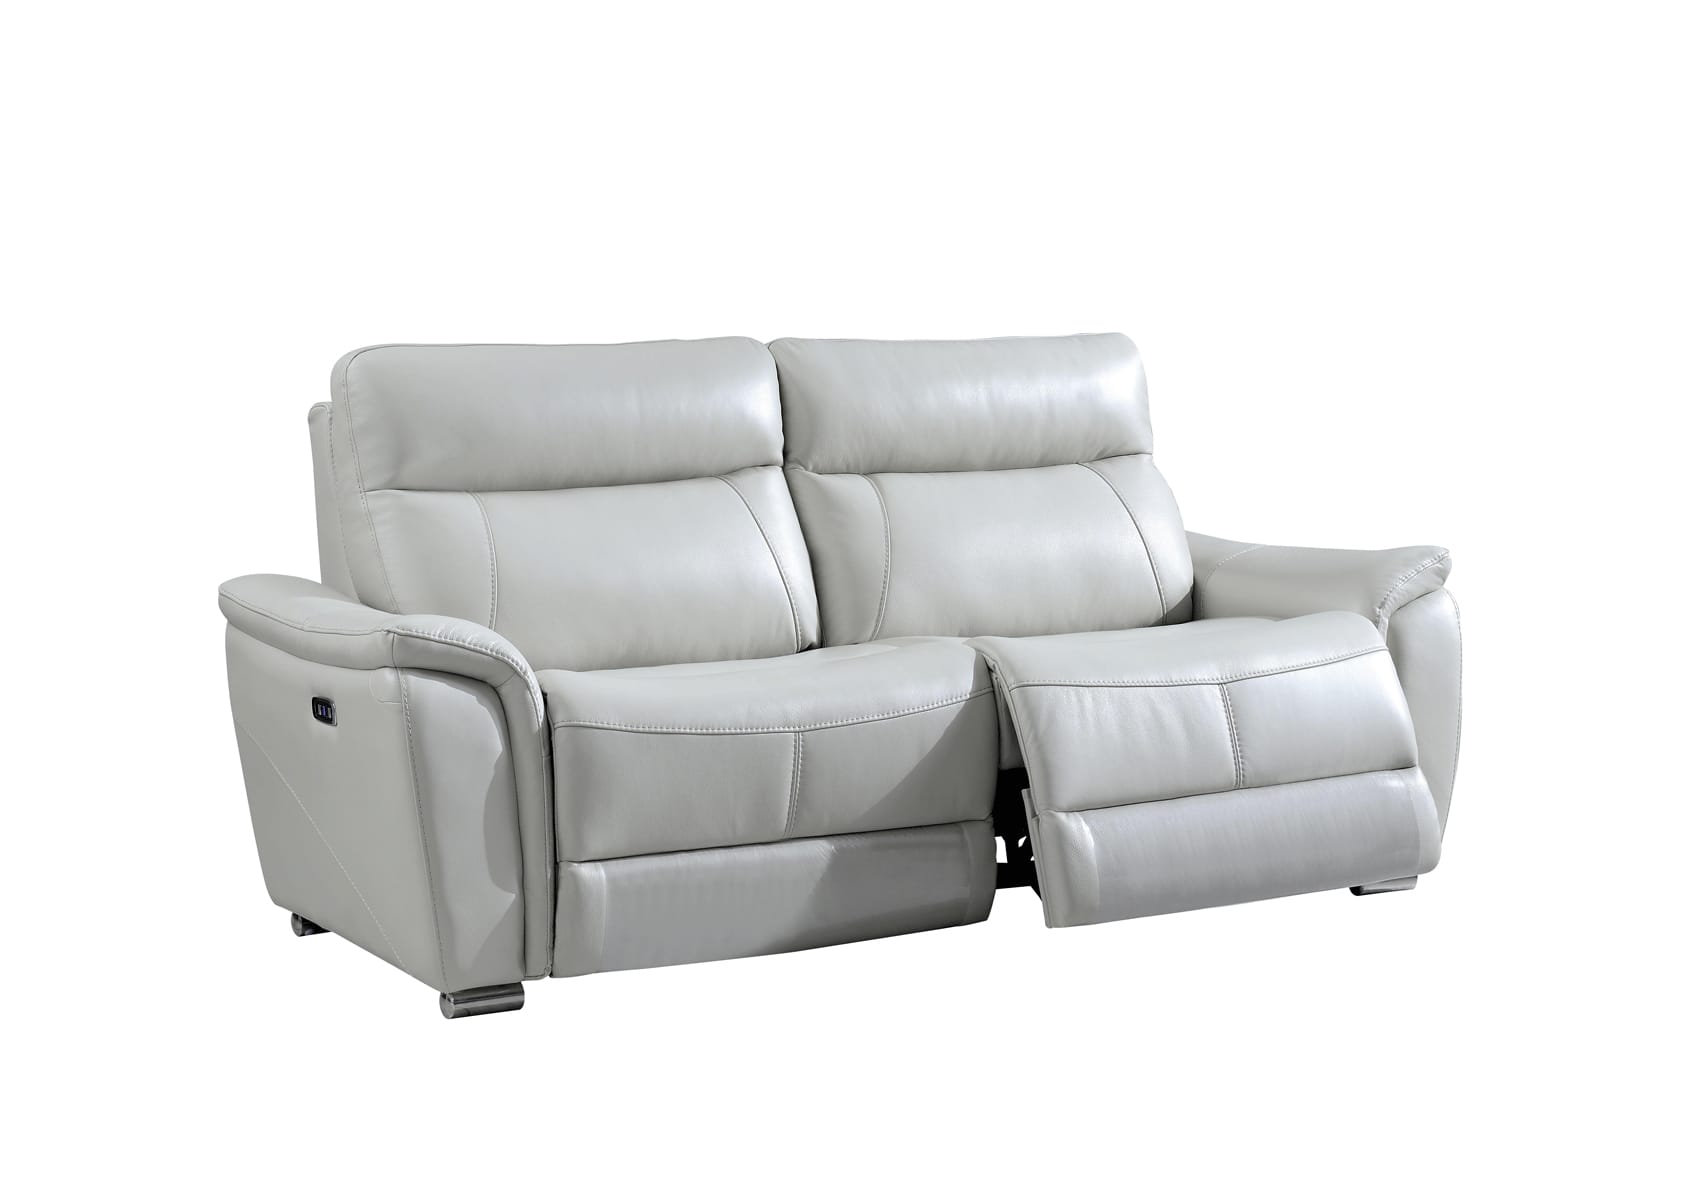 1705 Gray Leather Sofa W 2 Electric Recliners By Esf